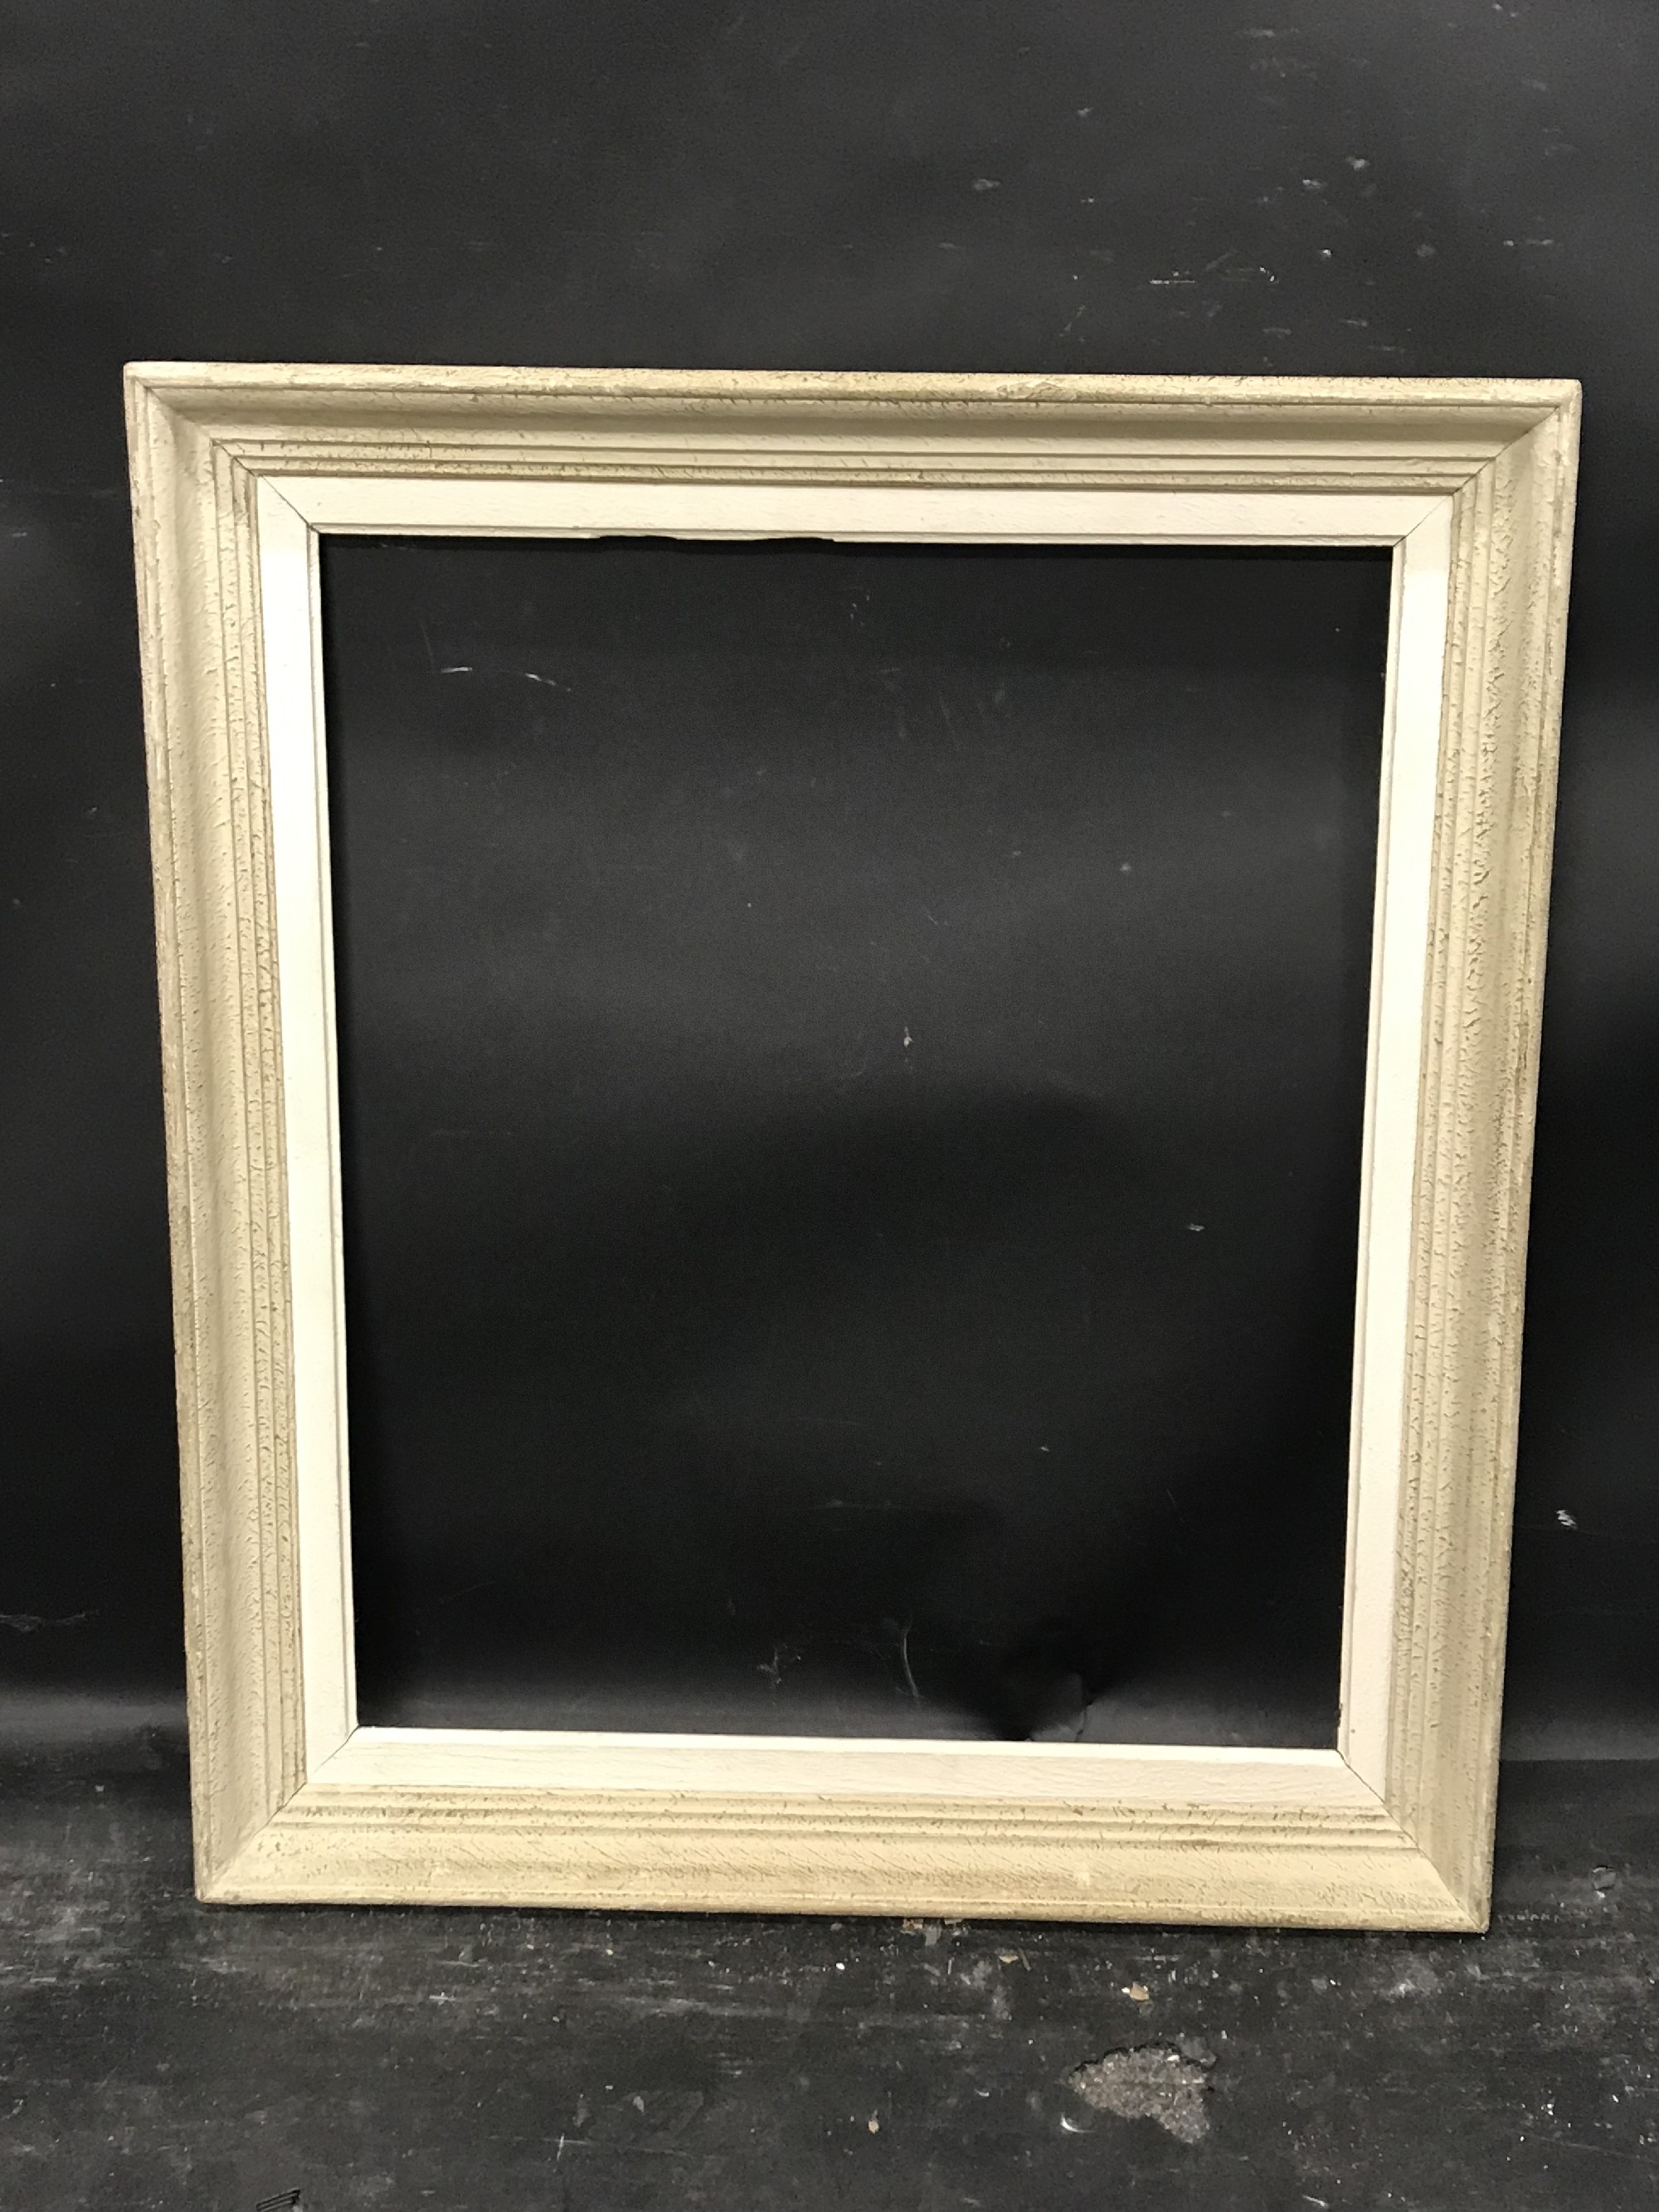 "Lot 60 - 20th Century French School. A White Painted Frame, 21.75"" x 18.25""."